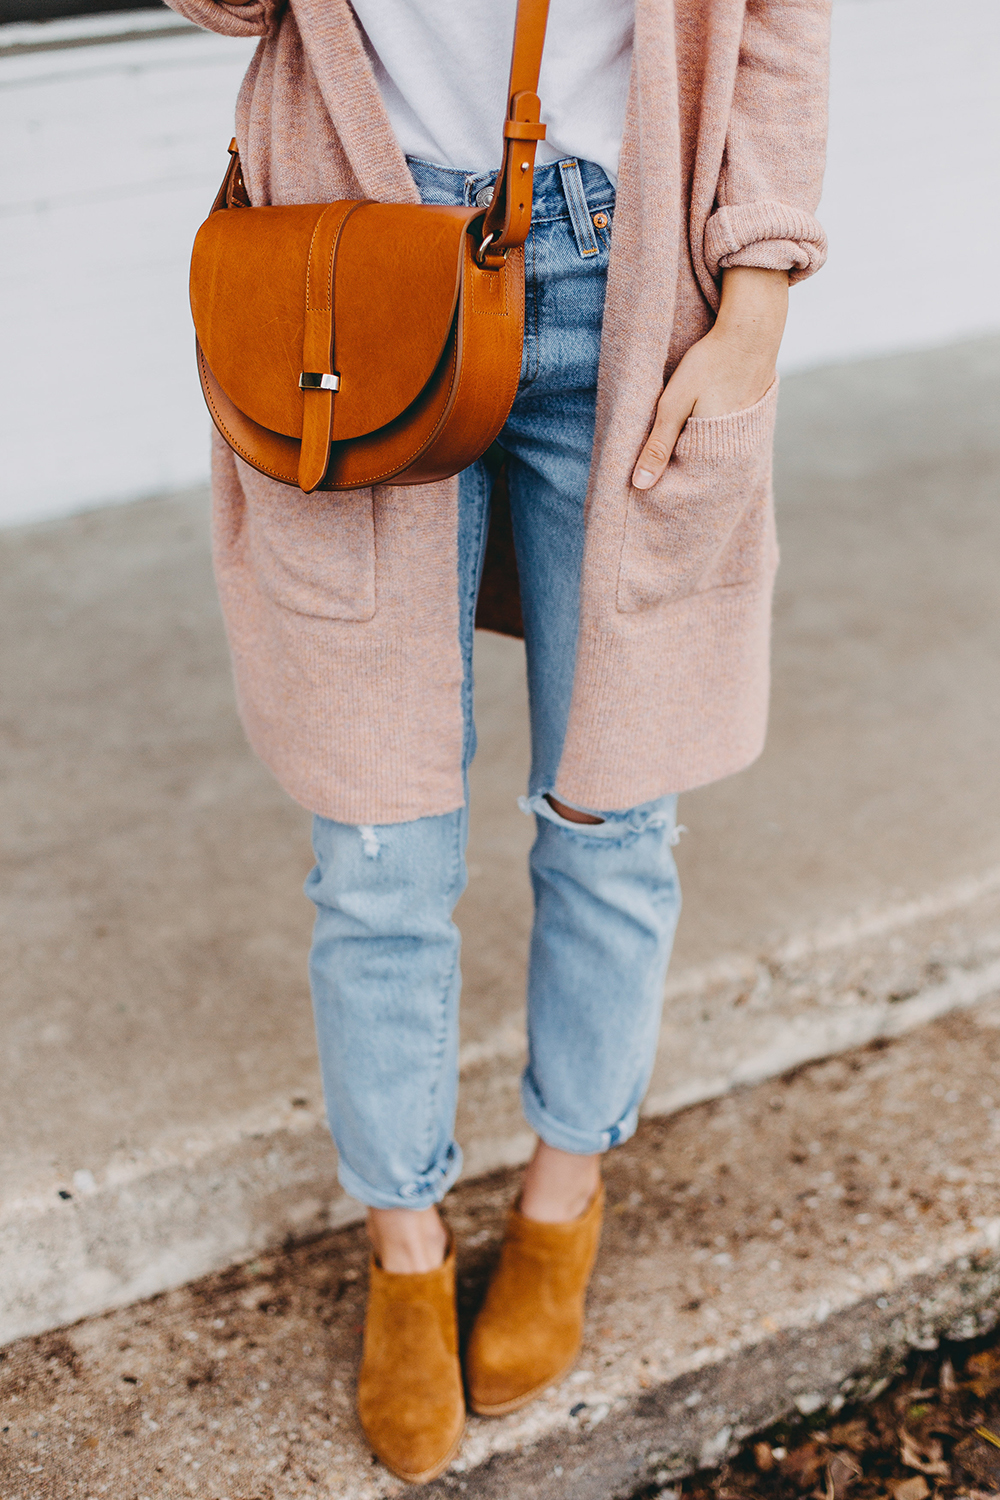 livvyland-blog-olivia-watson-austin-texas-fashion-blogger-spring-transition-wardrobe-pieces-madewell-blush-cardigan-tan-mules-1